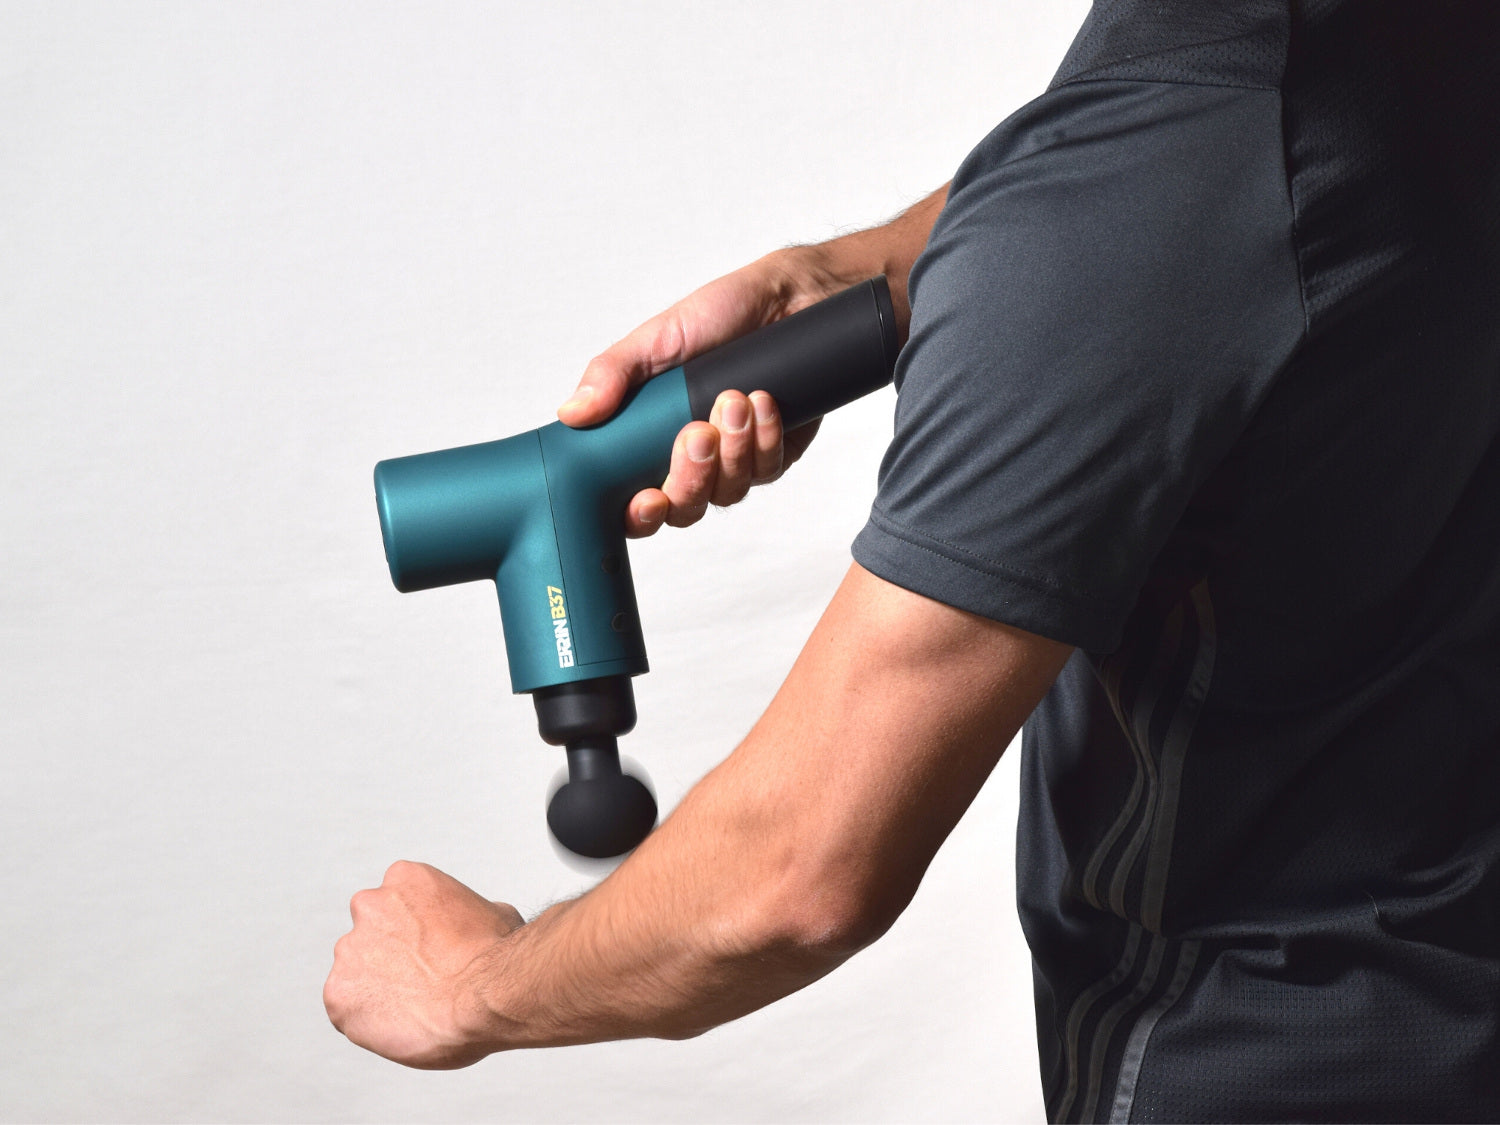 The Ekrin B37 is the best percussion massager for athletes